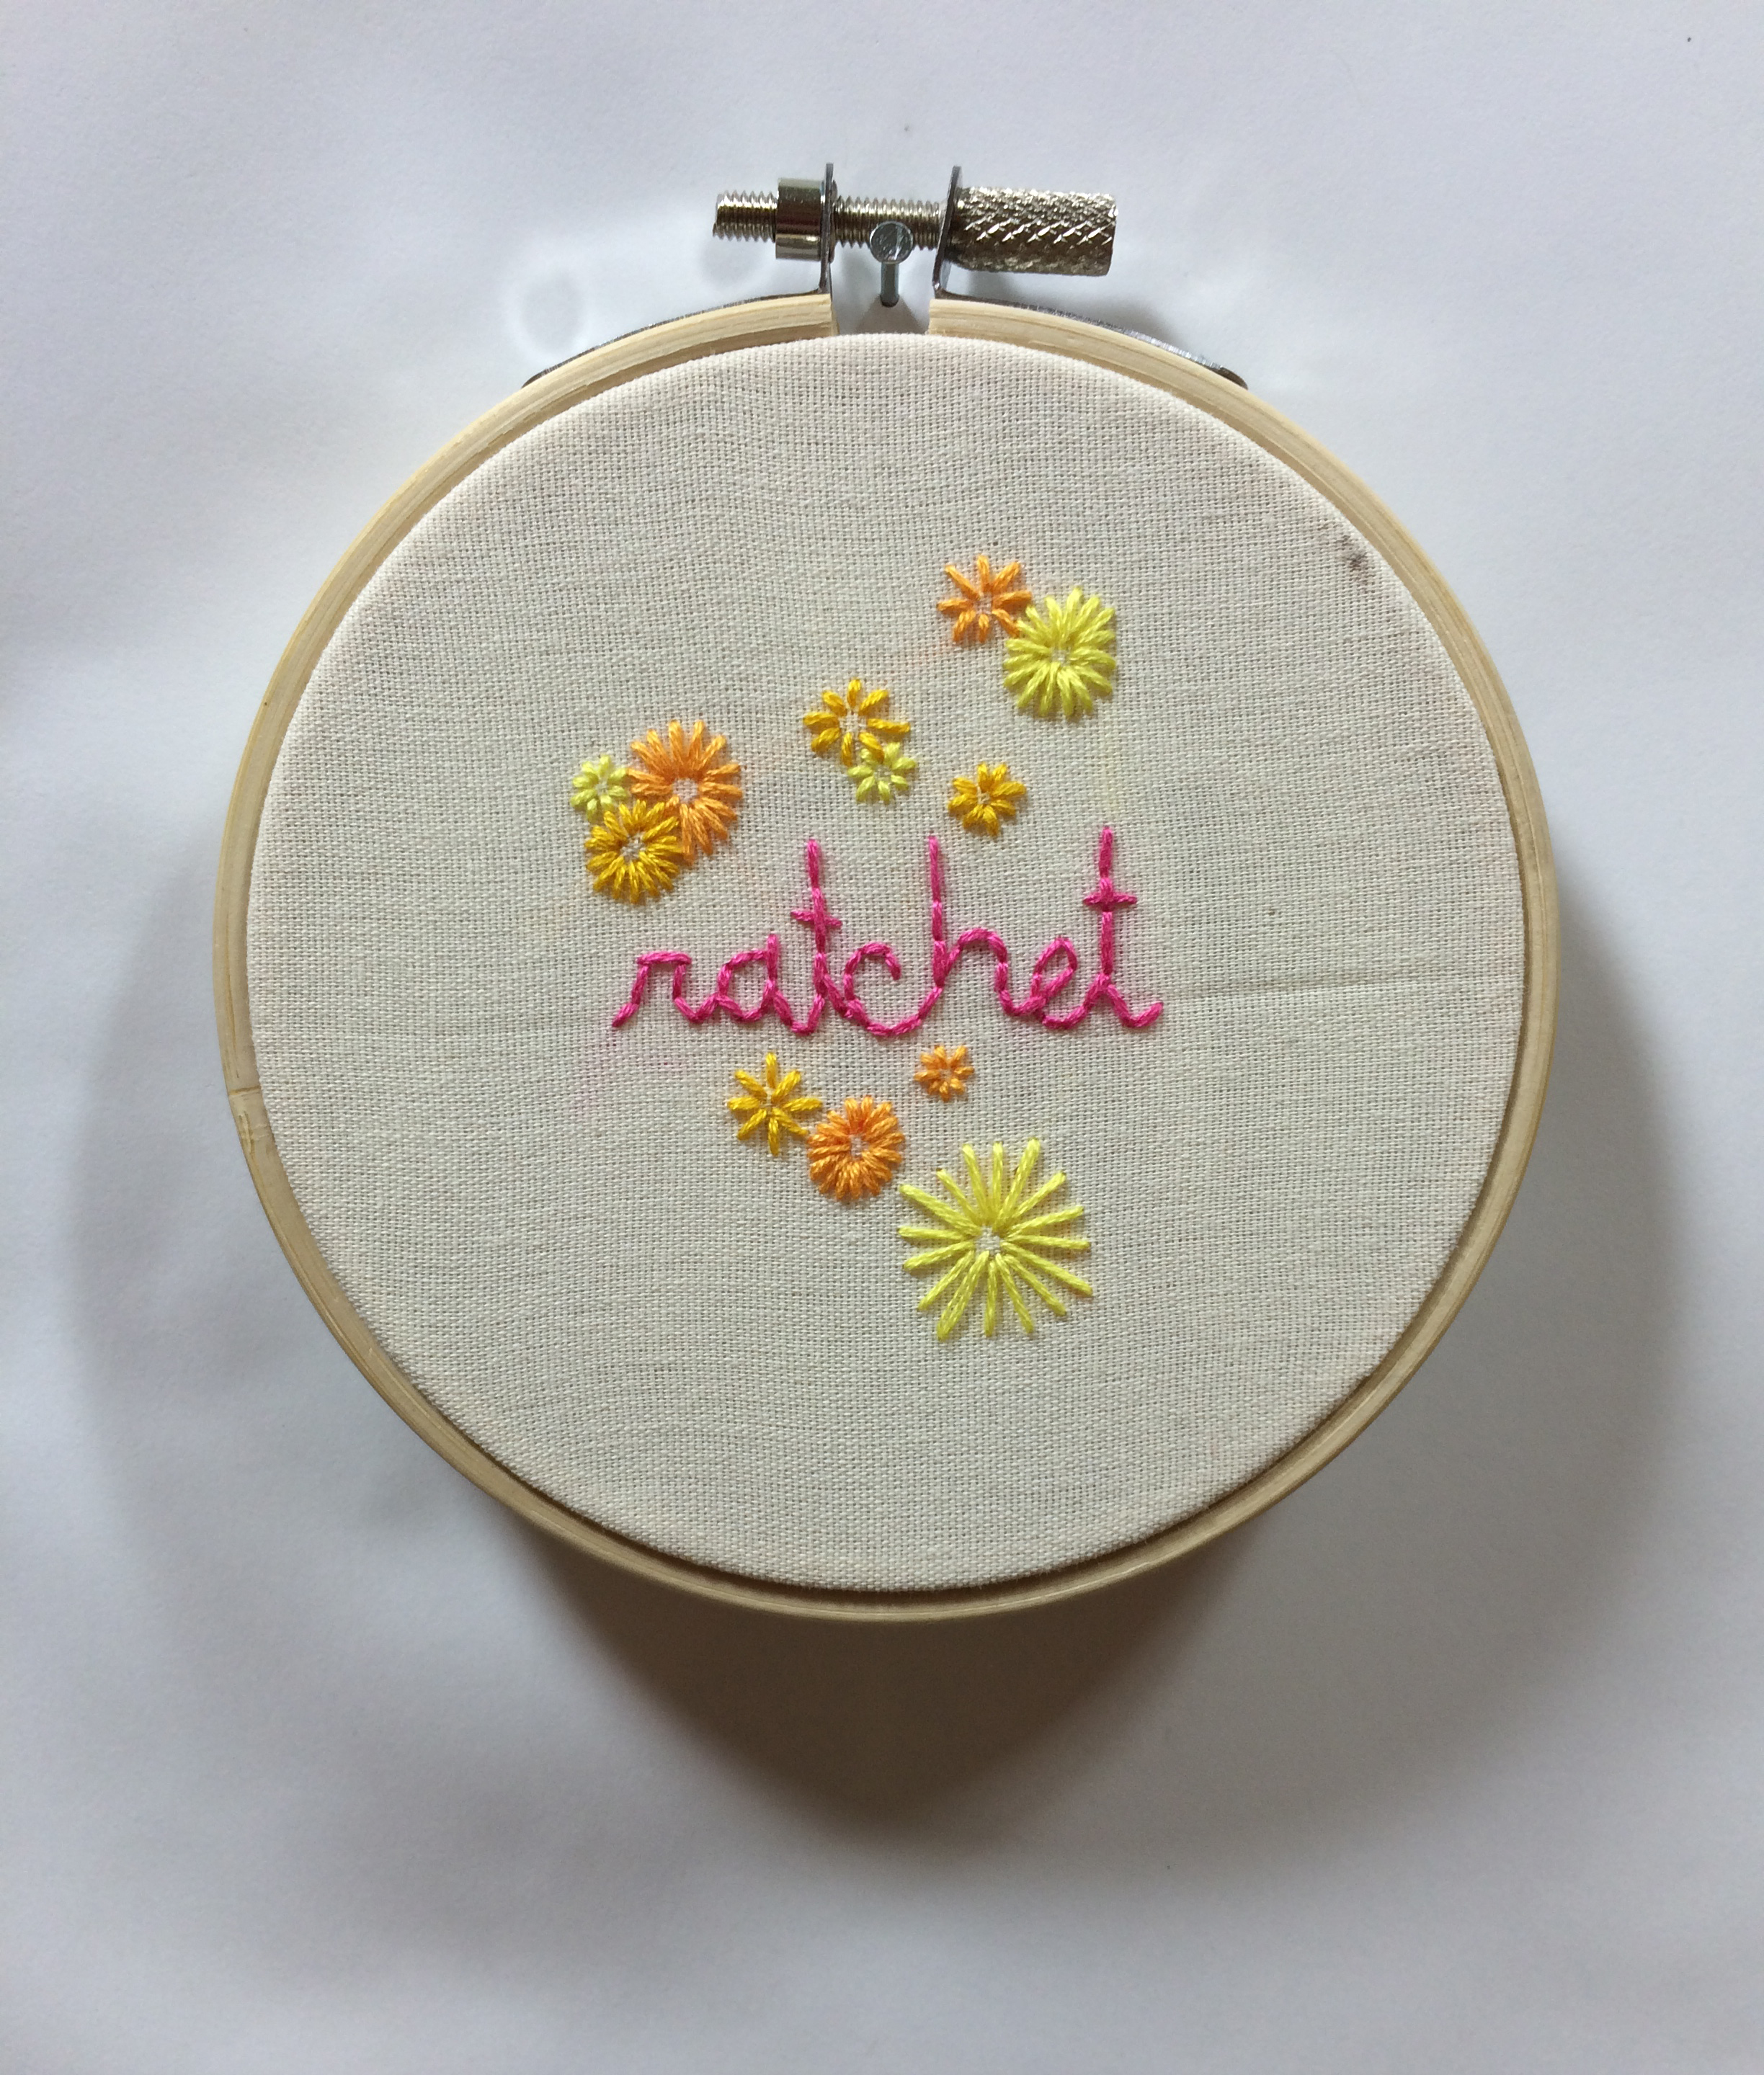 "Ratchet  2015 4"" embroidery"